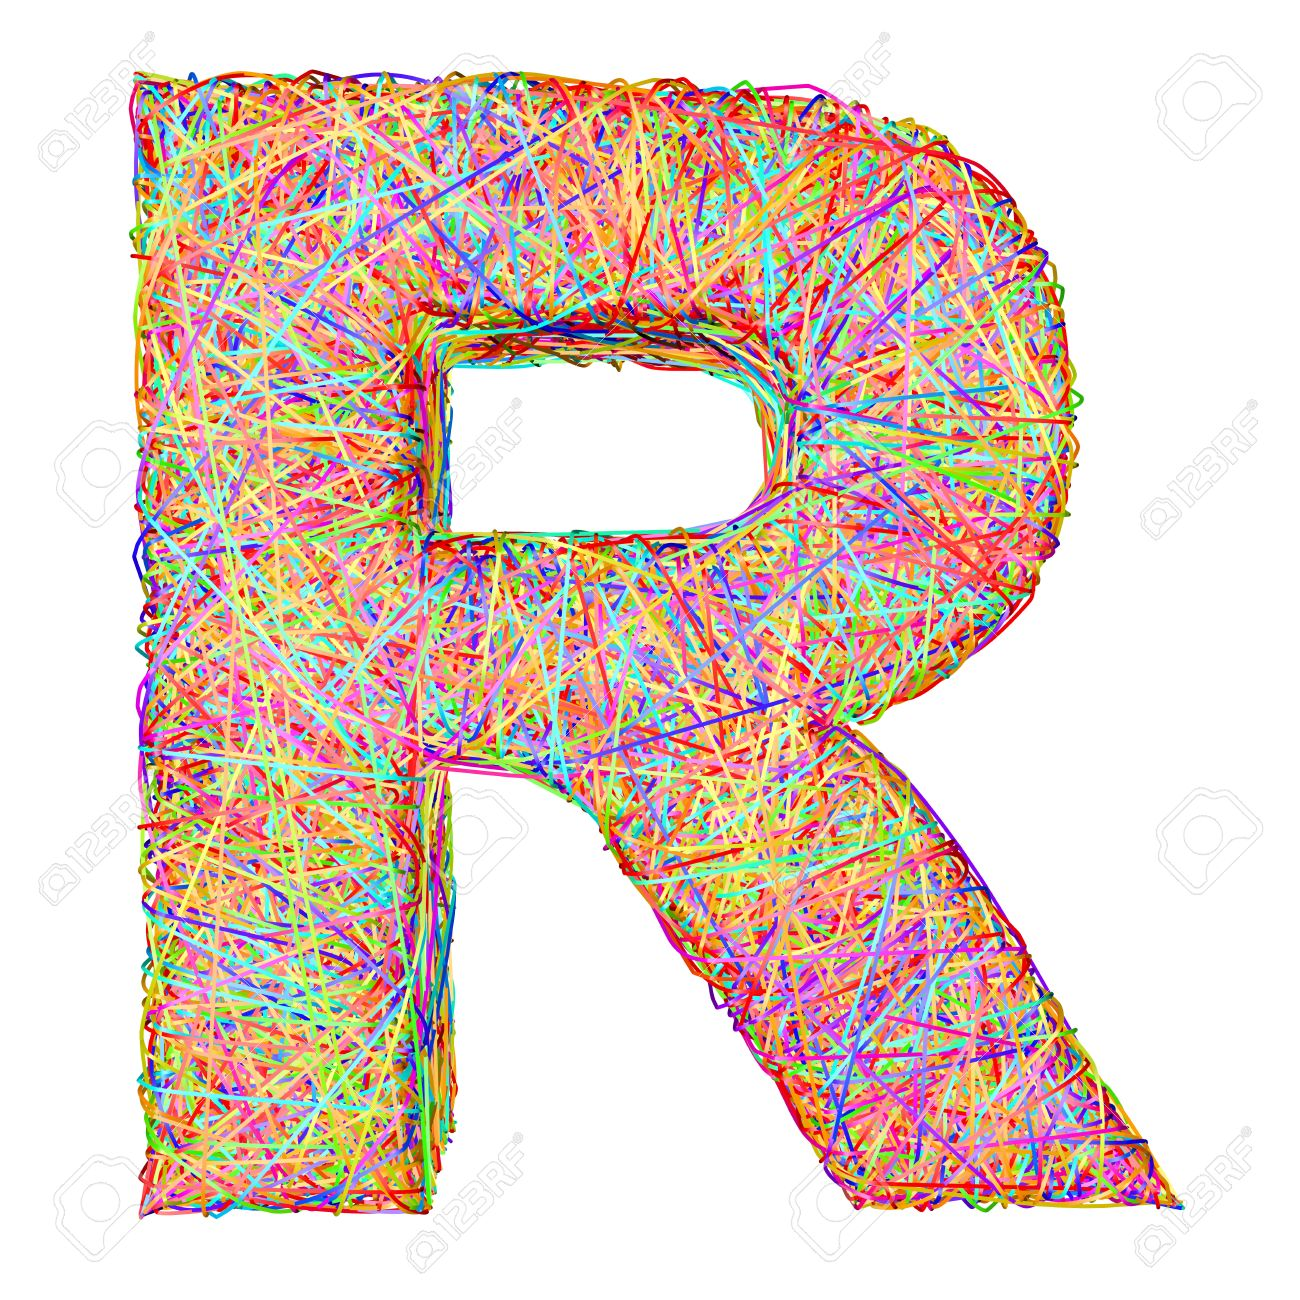 Alphabet symbol letter R composed of colorful striplines isolated on white. High resolution 3D image